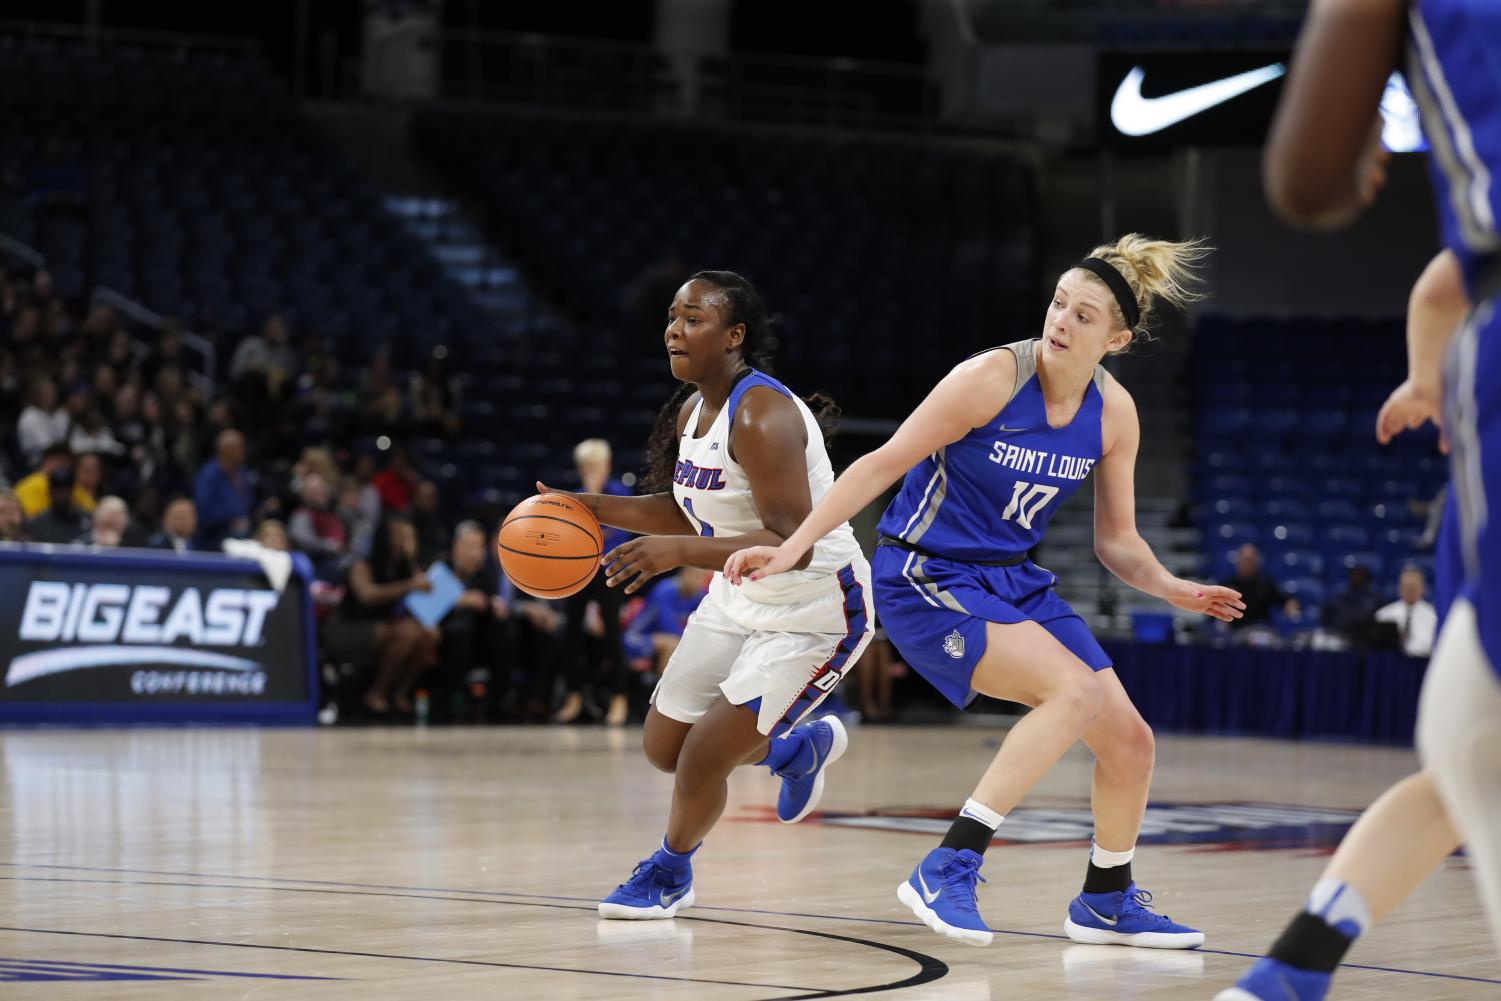 DePaul faces off against the winner of Xavier and Seton Hall in the quarterfinals of the Big East Tournament.  (Photo courtesy of DePaul Athletics)